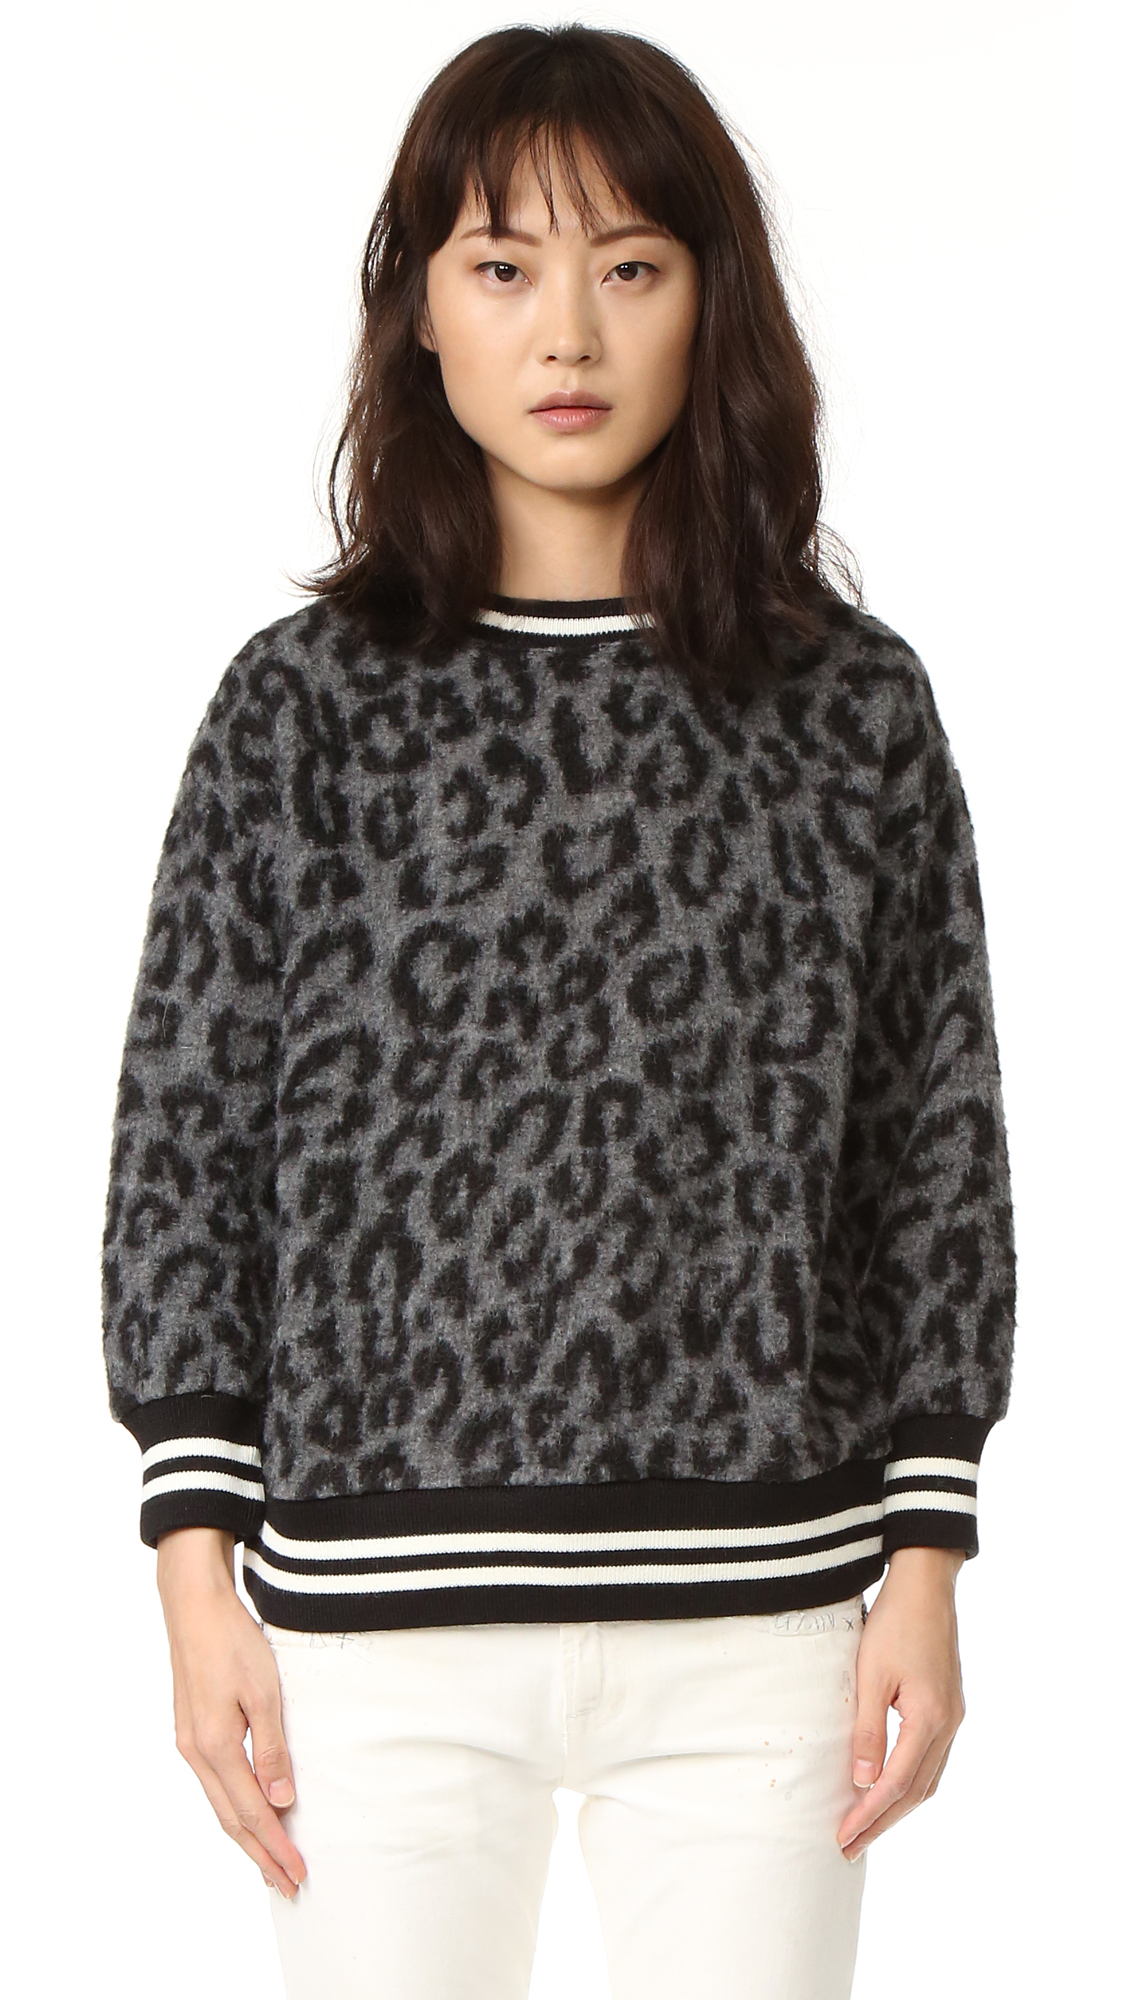 A leopard print motif details this fuzzy R13 sweater. Striped, ribbed edges add a sporty finish. Fabric: Brushed knit. Shell: 64% polyester/36% wool. Trim: 70% acrylic/30% wool. Dry clean. Imported, China. Measurements Length: 24.5in / 62cm, from shoulder Measurements